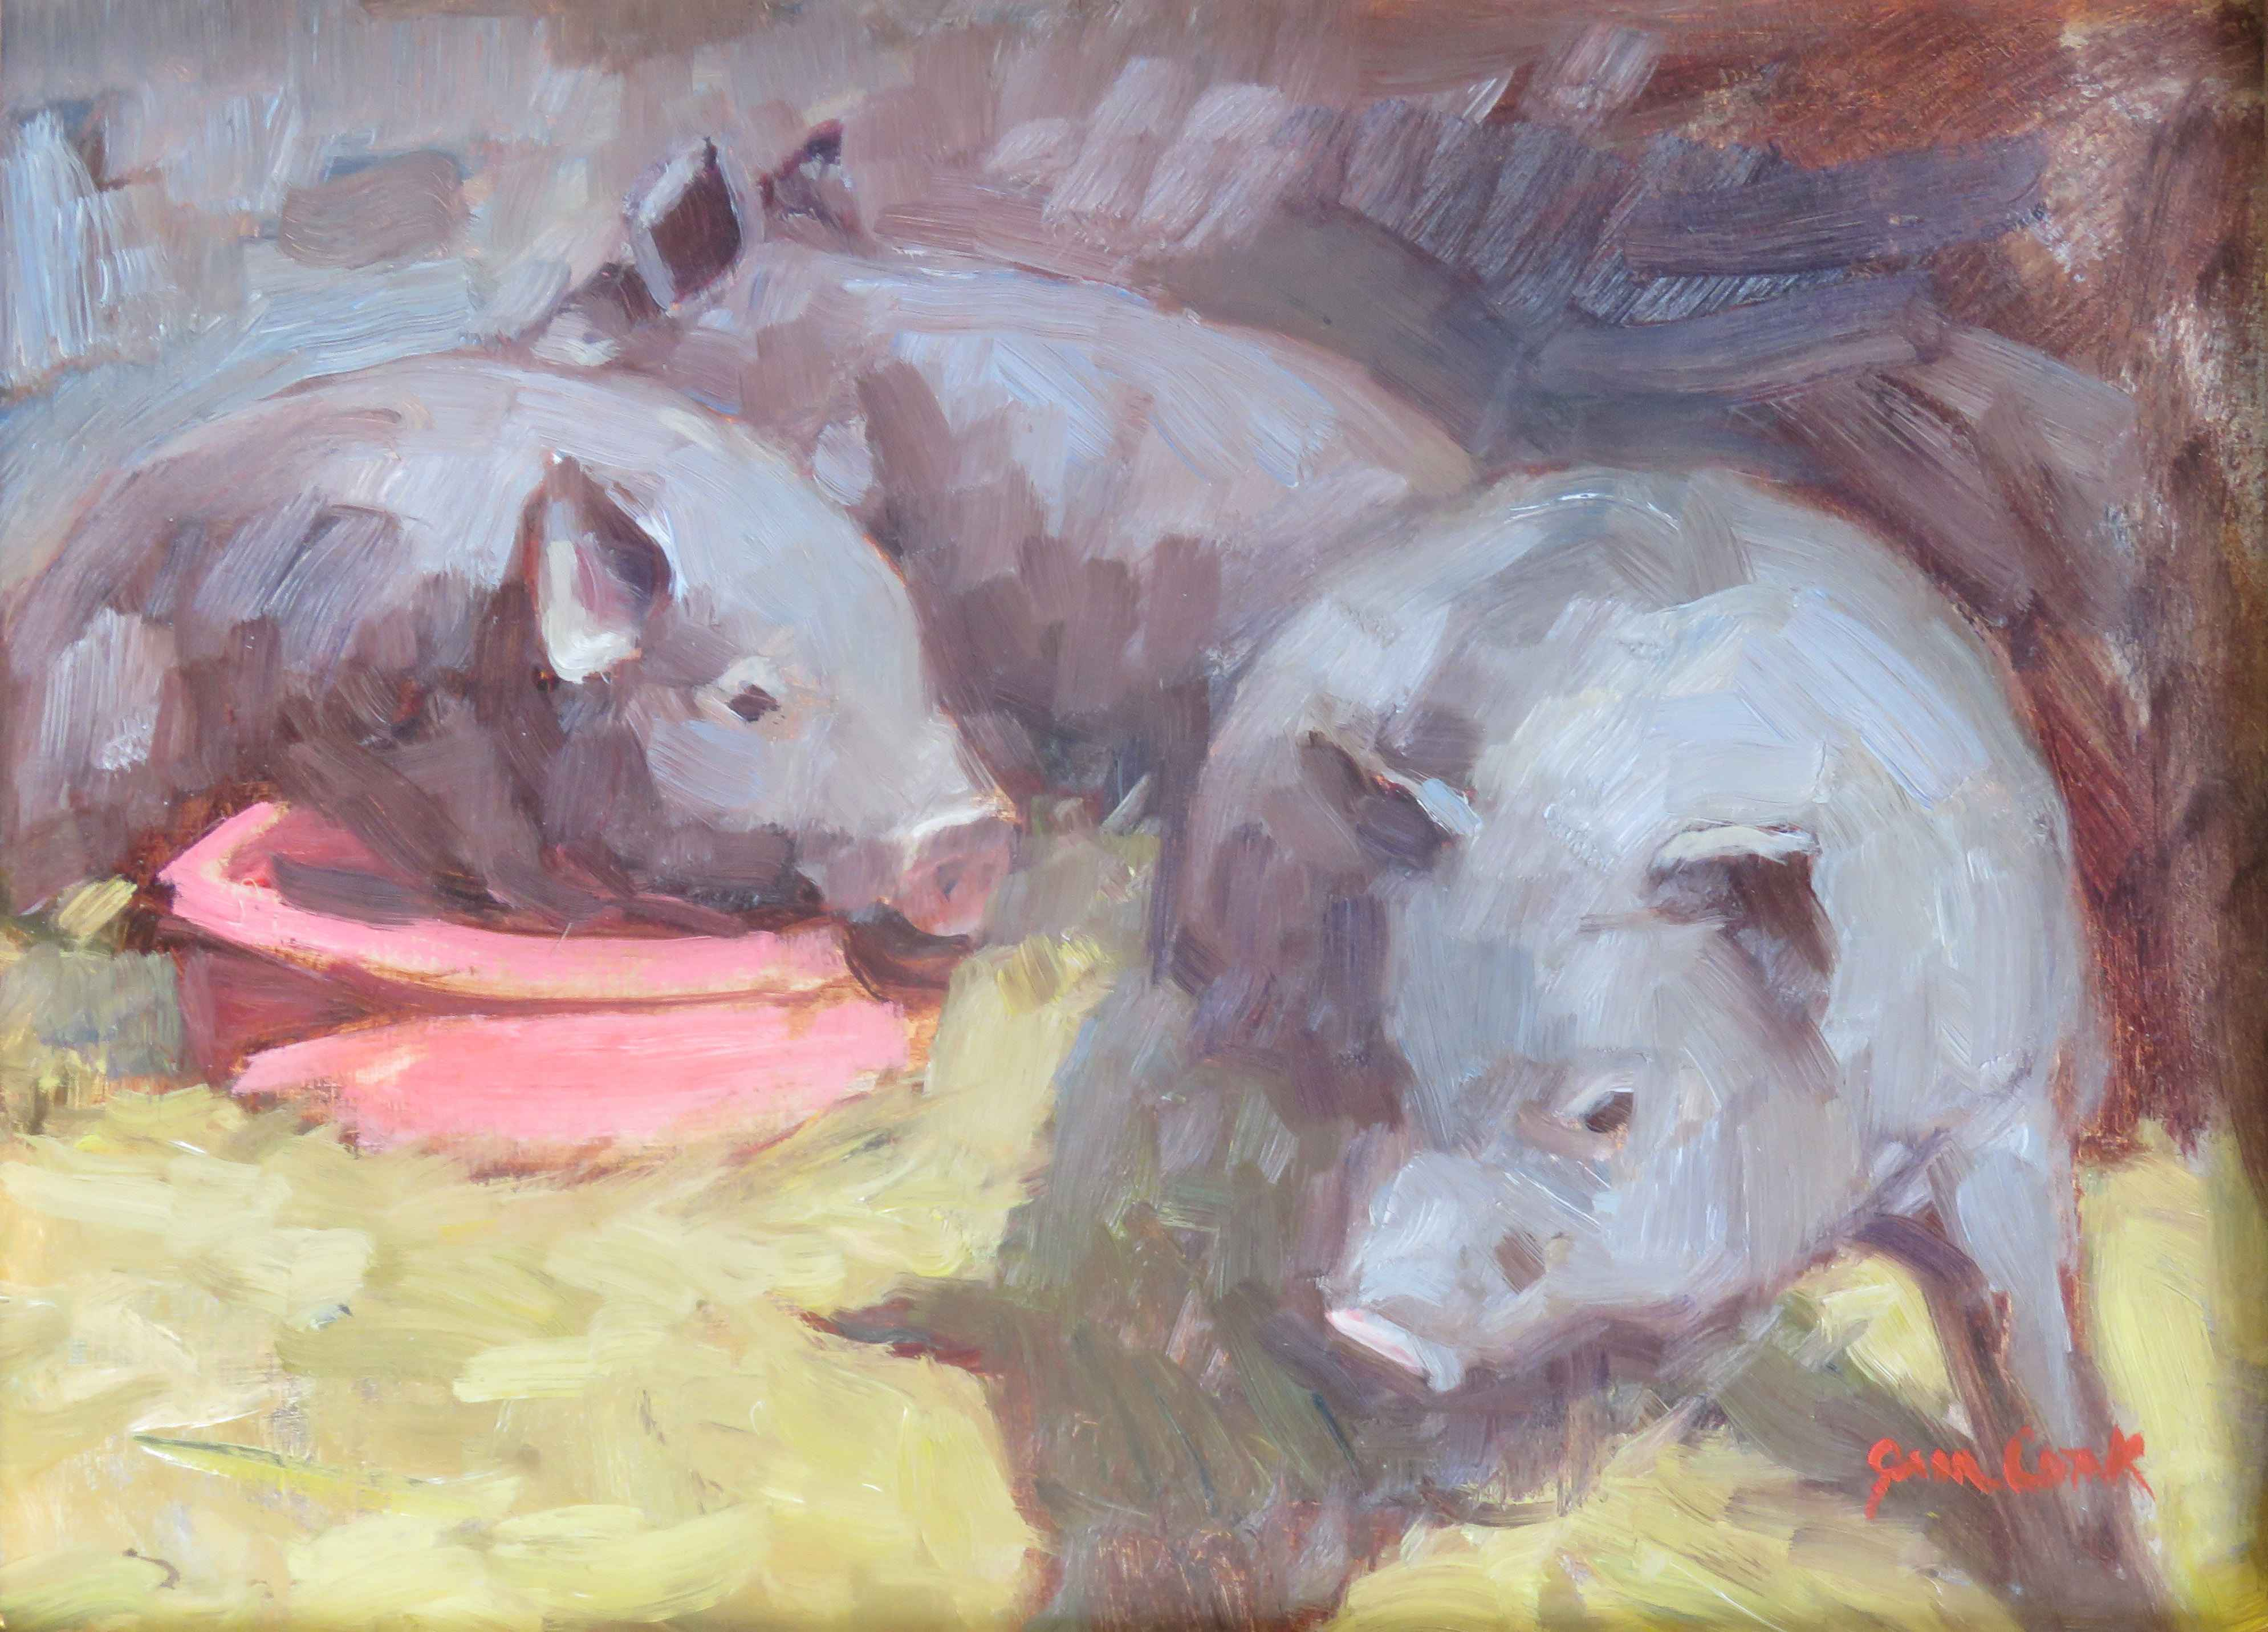 A Swine at Heart by  Jean Cook - Masterpiece Online